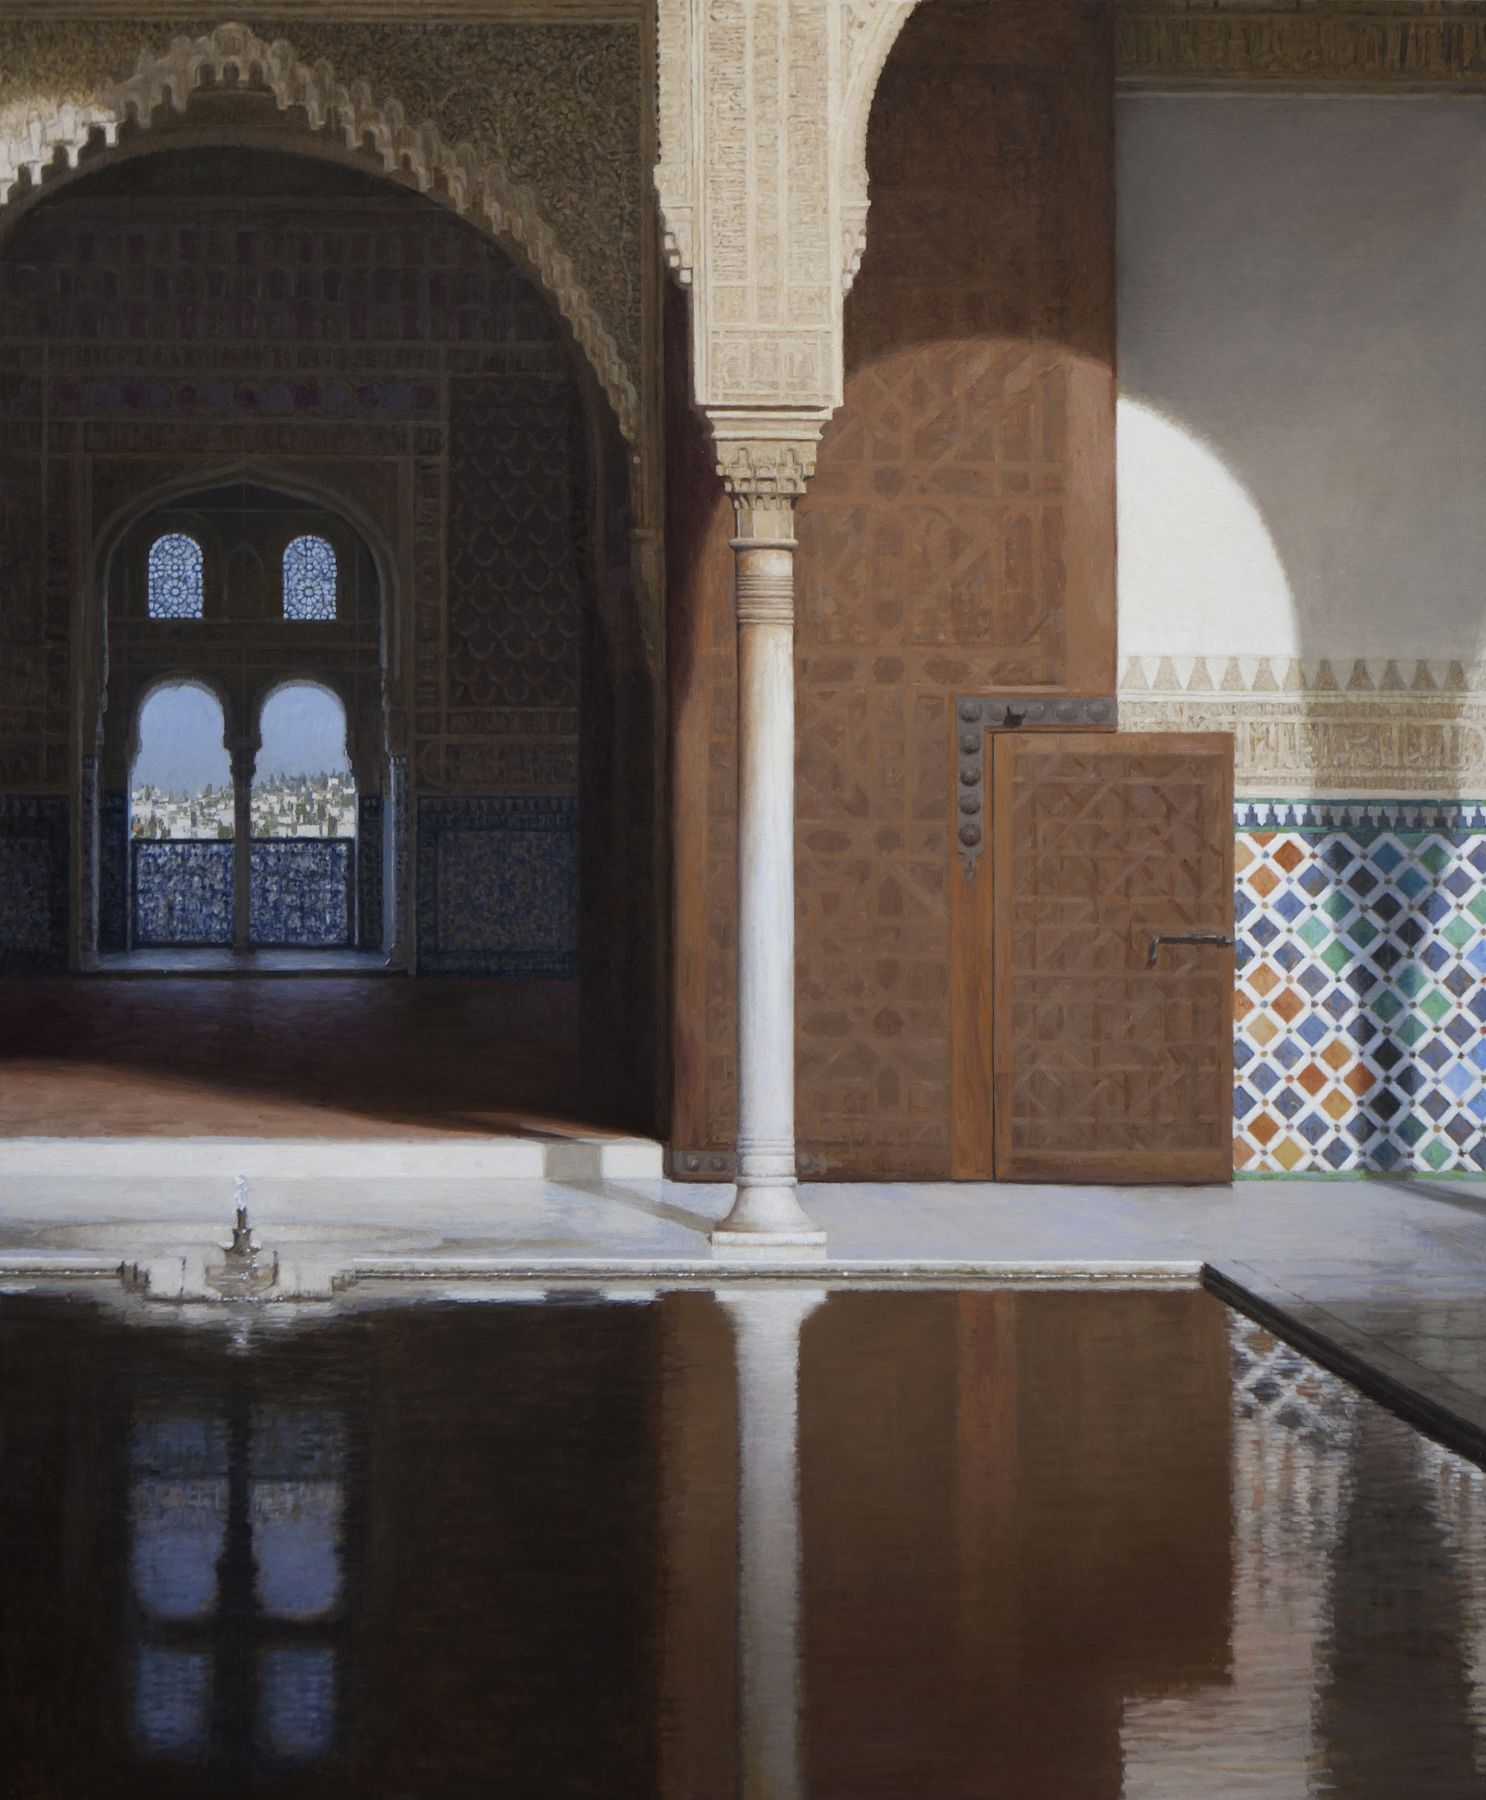 Guillermo Muñoz Vera, The Doorway to the Throne Room (SOLD), 2013-14, oil on canvas mounted on panel, 78 3/4 x 72 inches